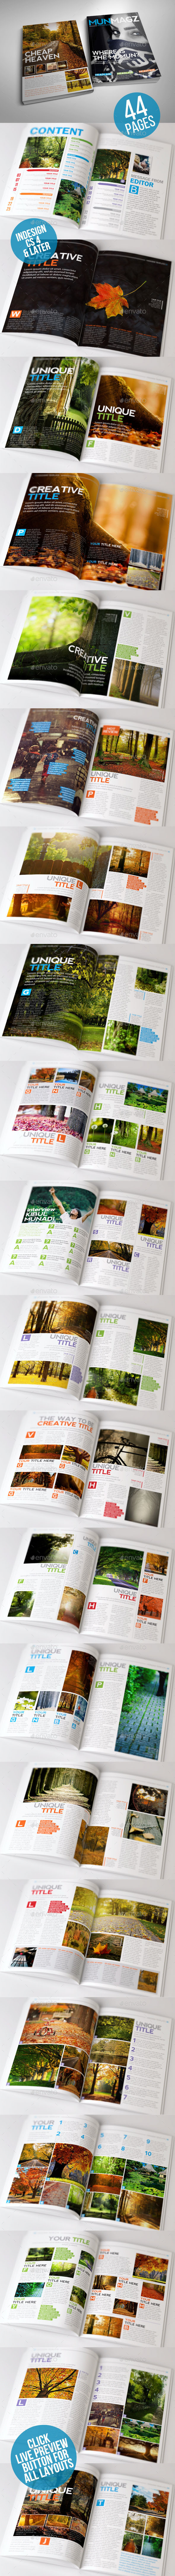 Clean and Simple Magazine Template 44 Page - Magazines Print Templates